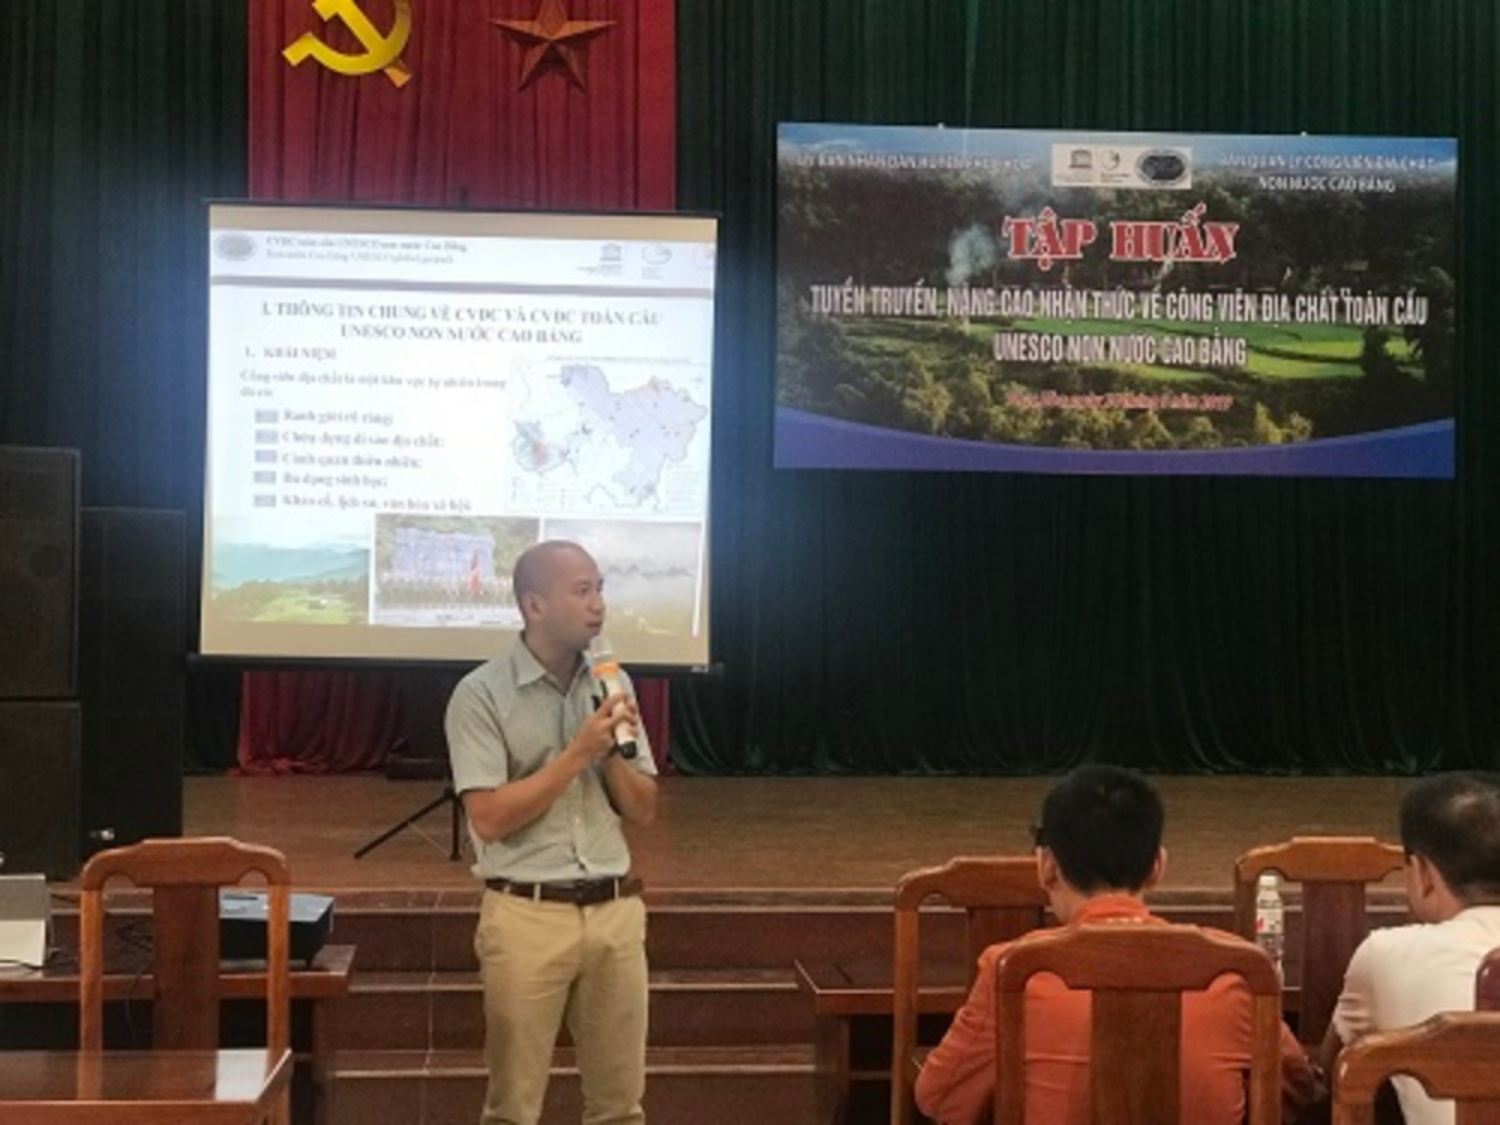 GEOPARK EDUCATION FOR COMMUNITIES IN PHUC HOA DISTRICT